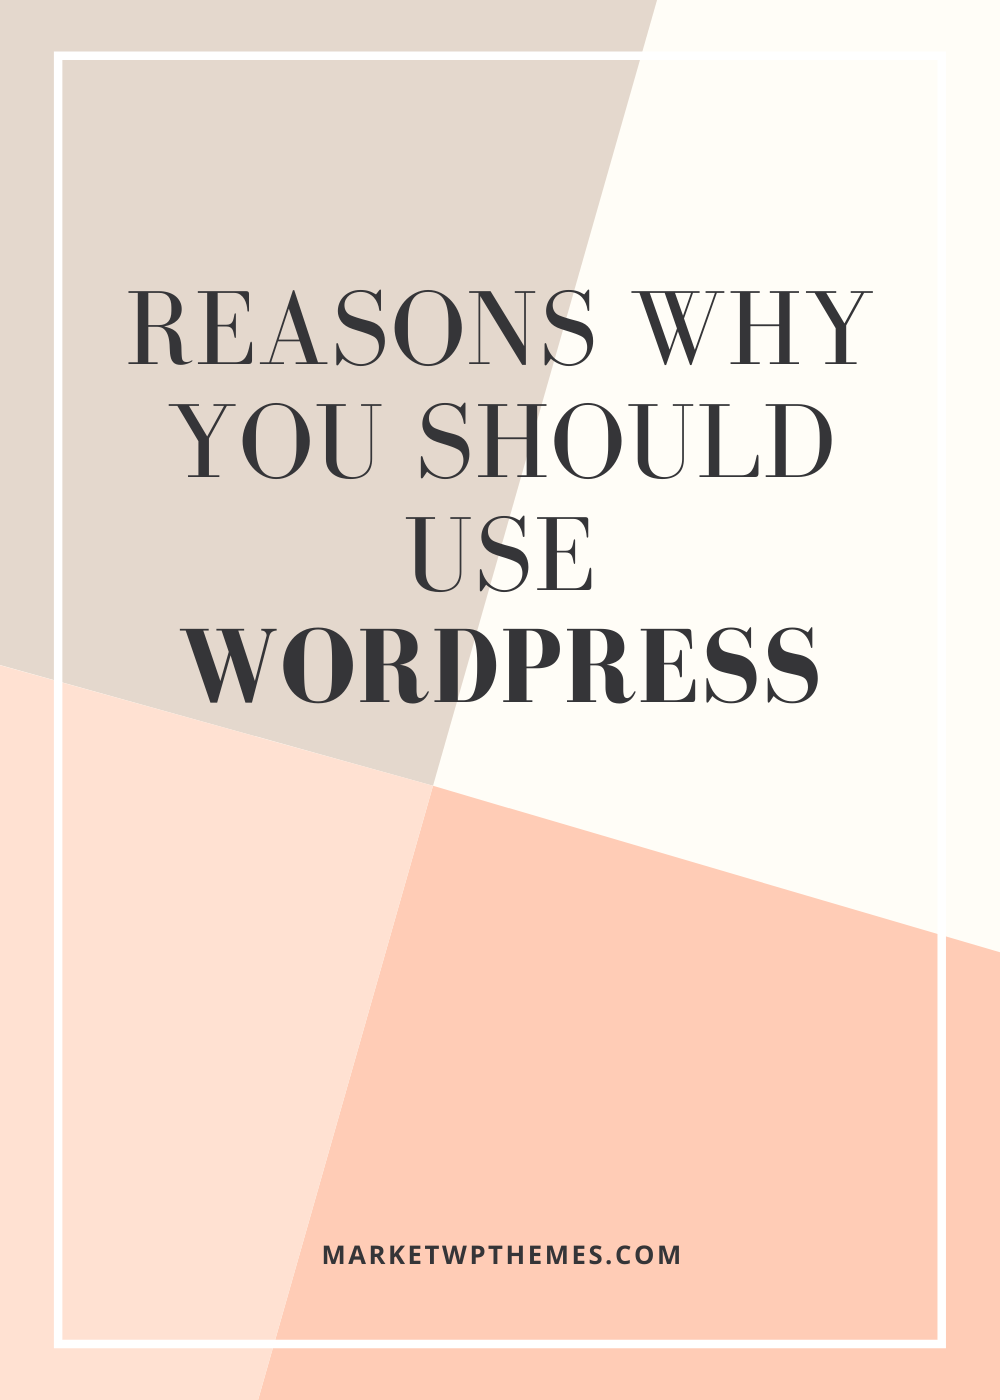 Reasons Why You Should Use WordPress